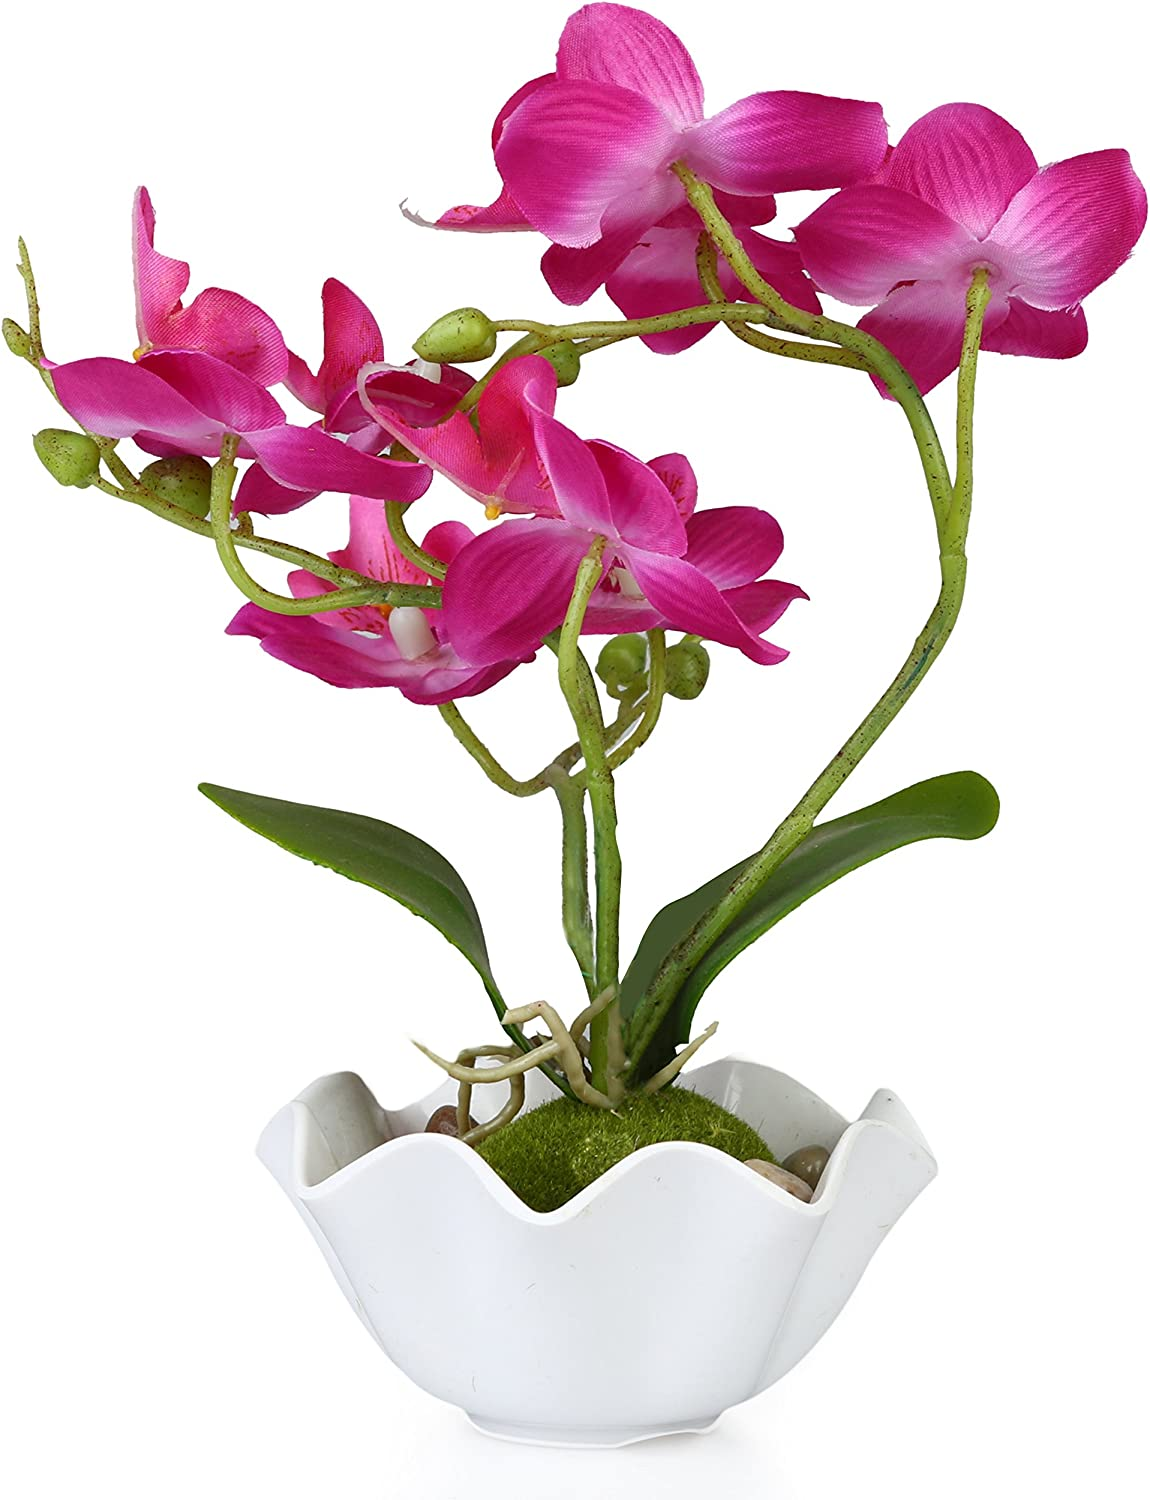 MyGift Decorative Artificial Silk Phalaenopsis Orchid Flower with White Vase, Purple